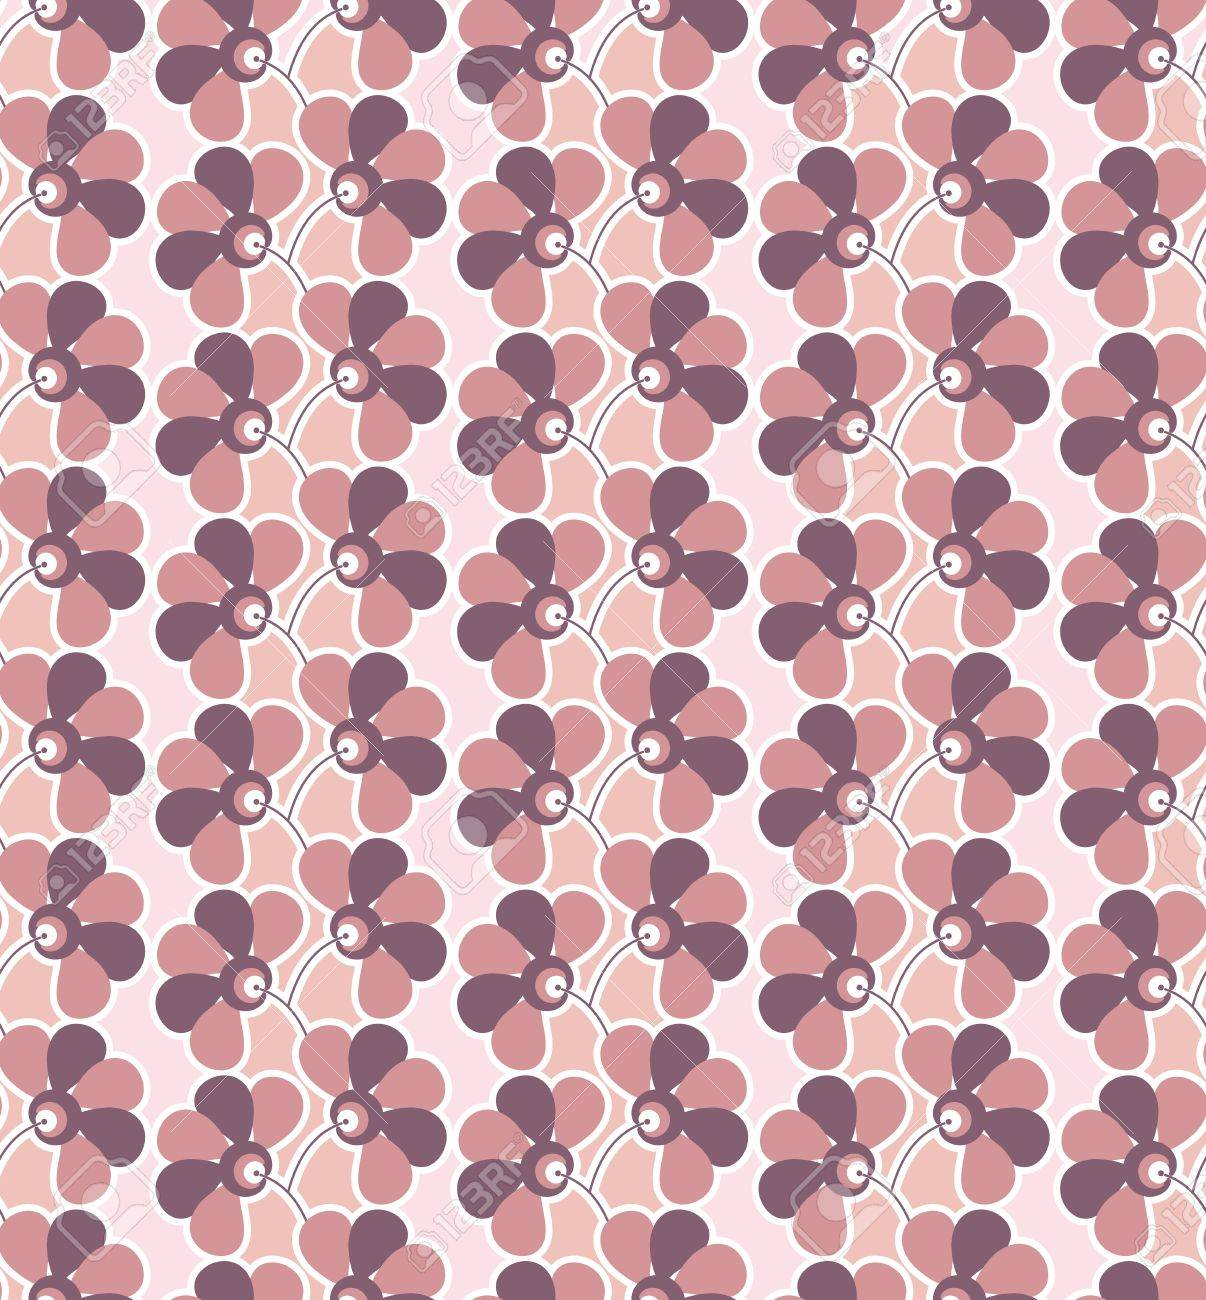 Fancy Wallpaper Seamless Fancy Wallpaper Royalty Free Cliparts Vectors And Stock